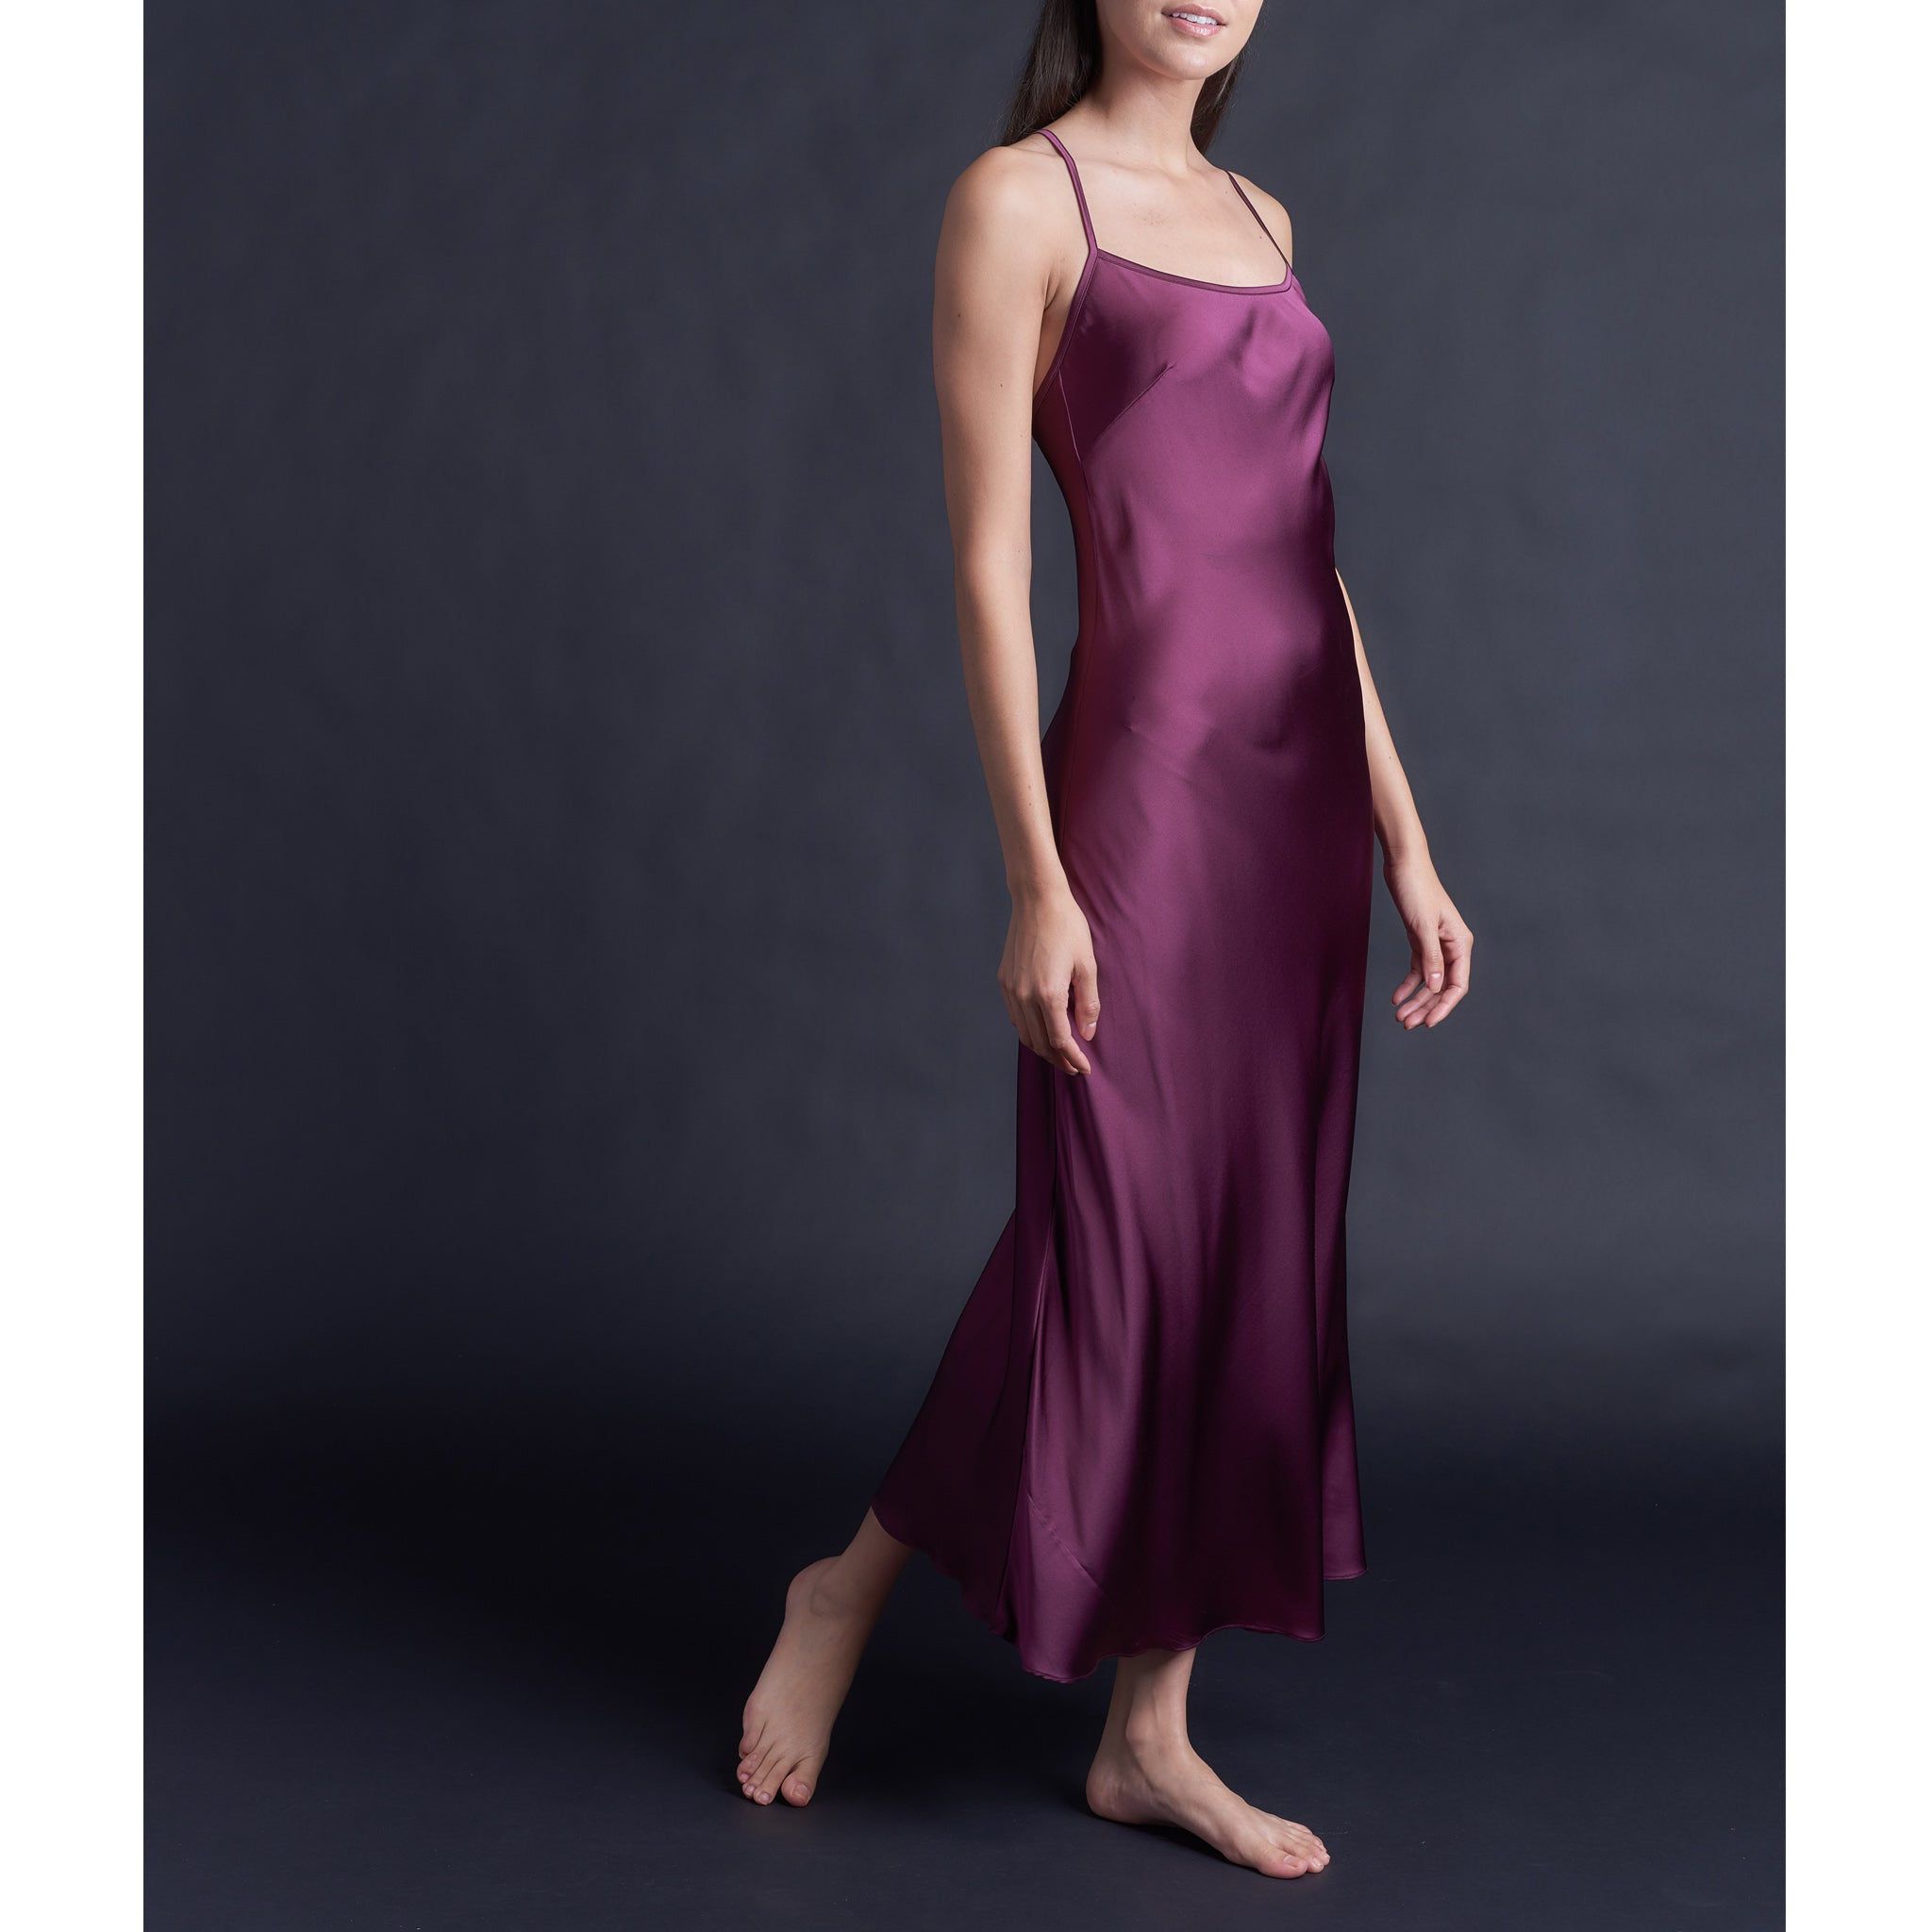 Juno Slip in Garnet Stretch Silk Charmeuse